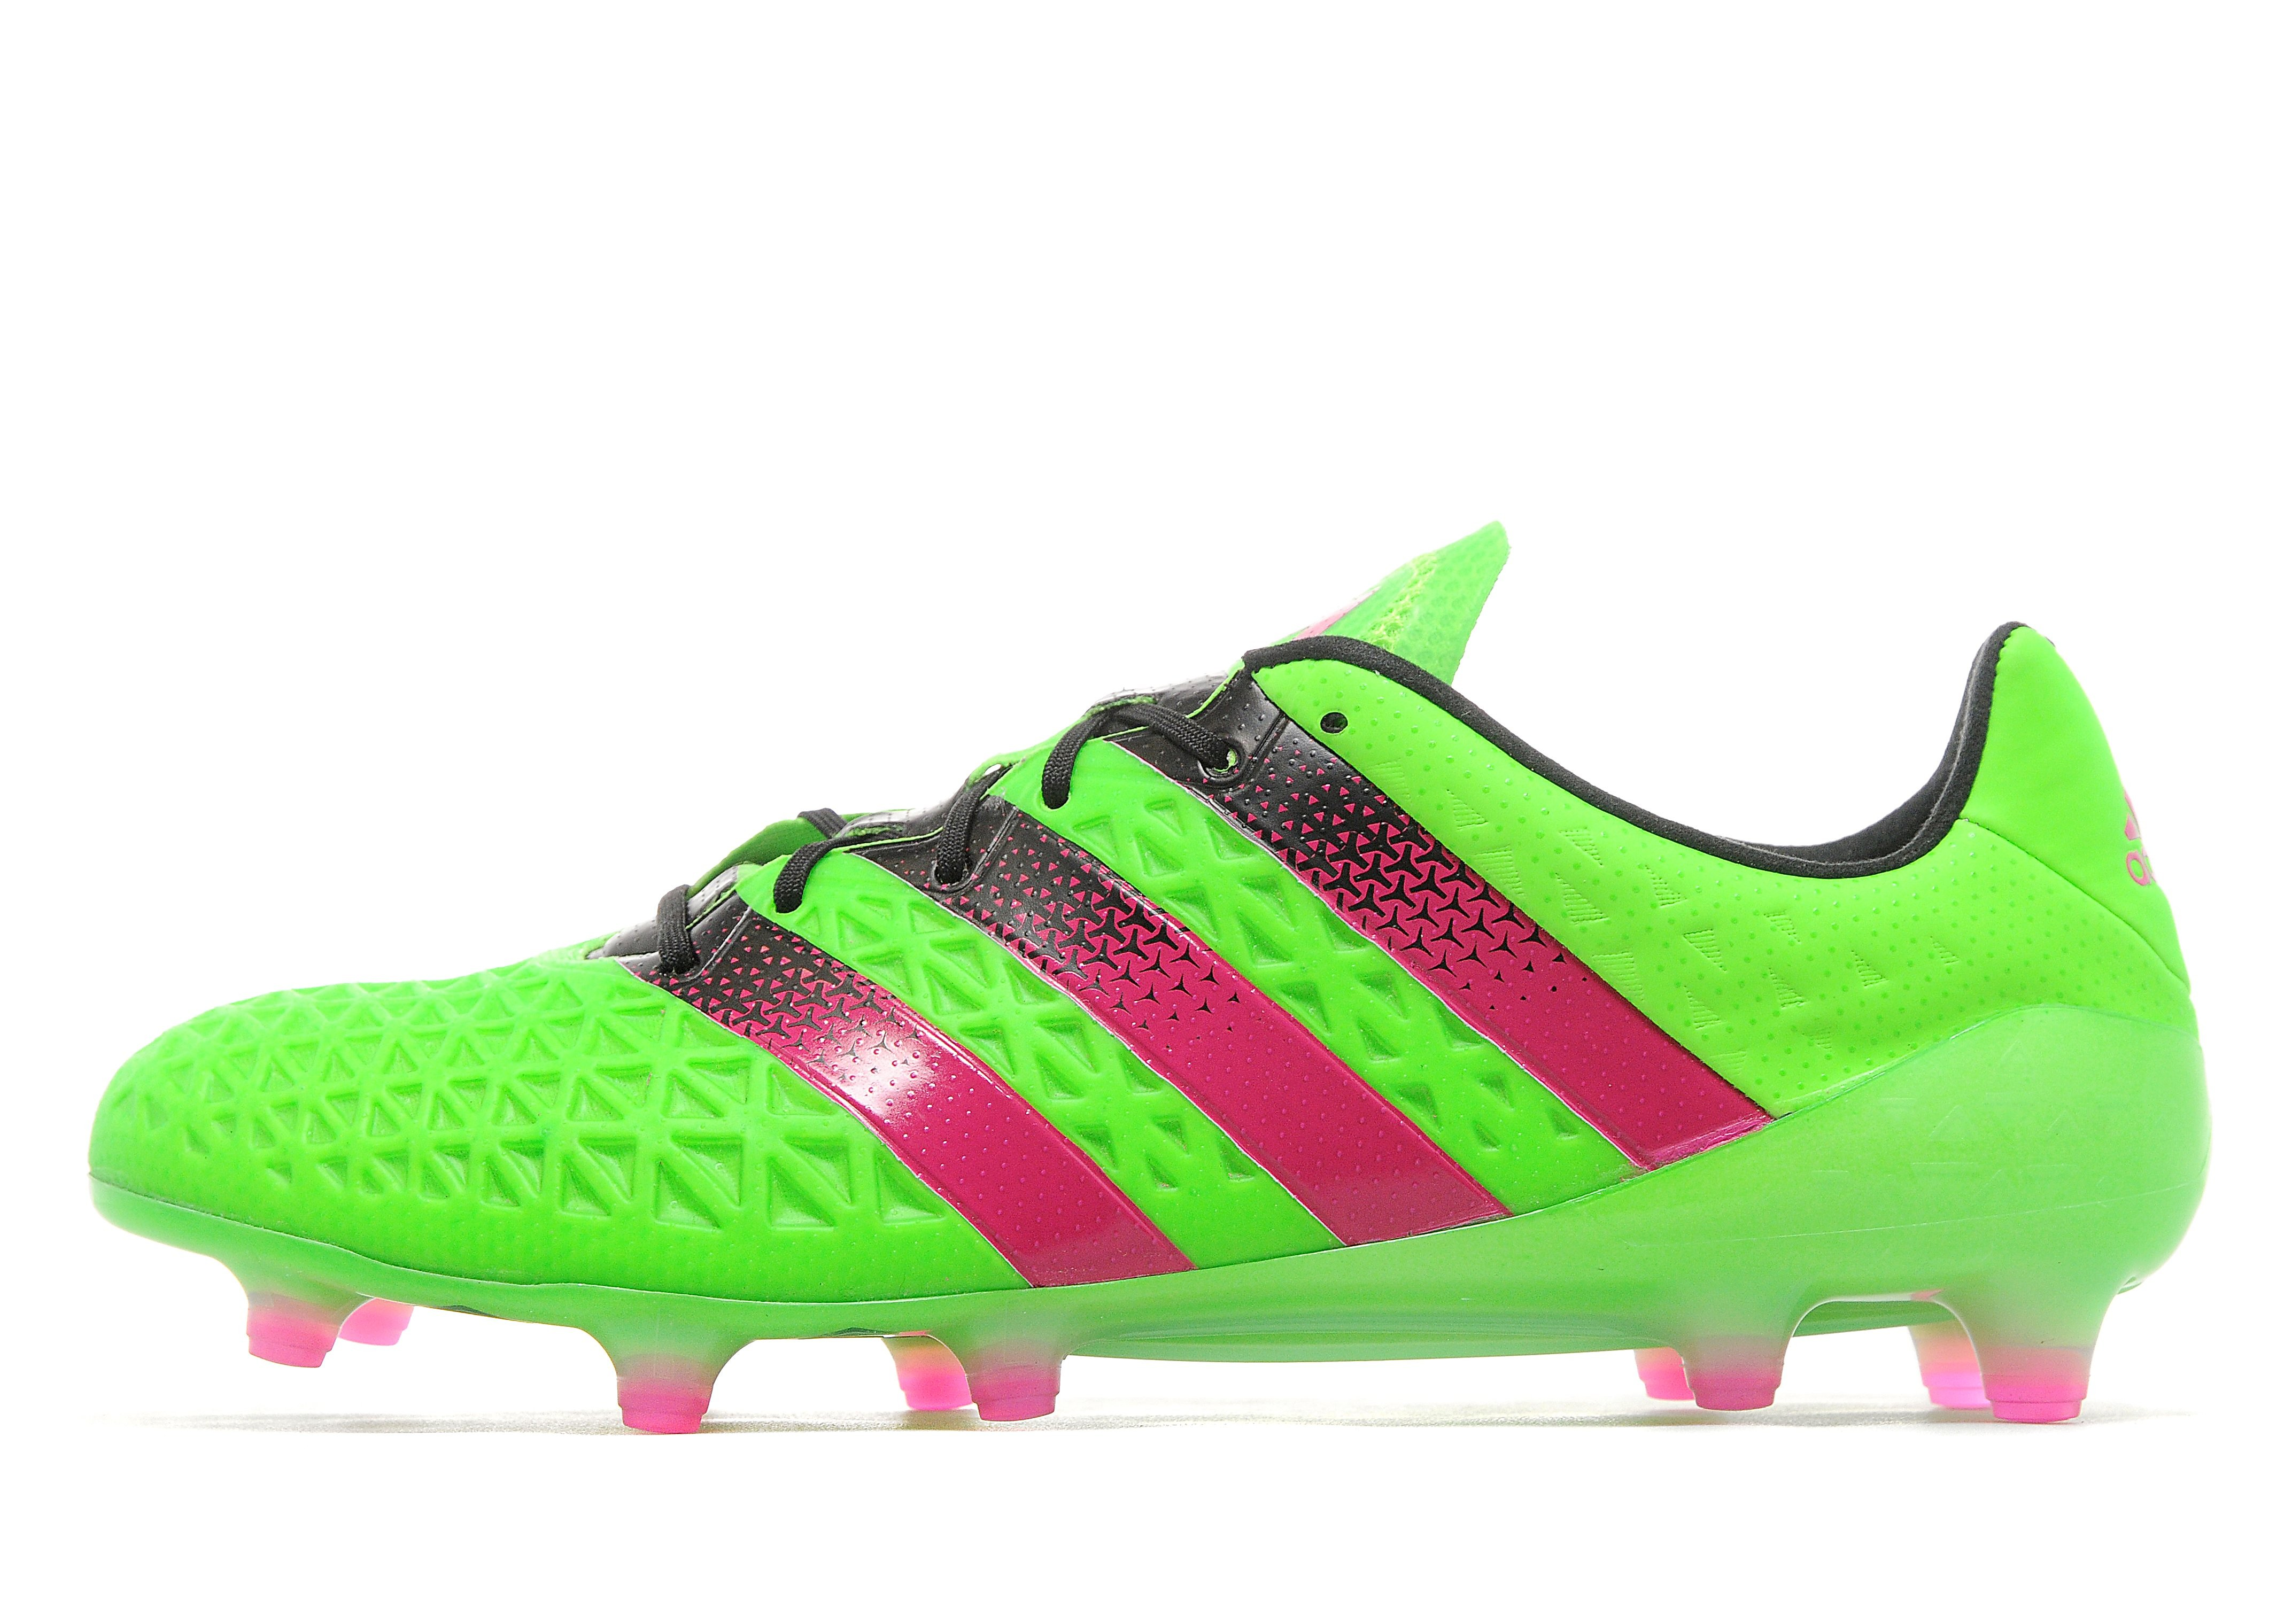 adidas Ace 16.1 Firm Ground